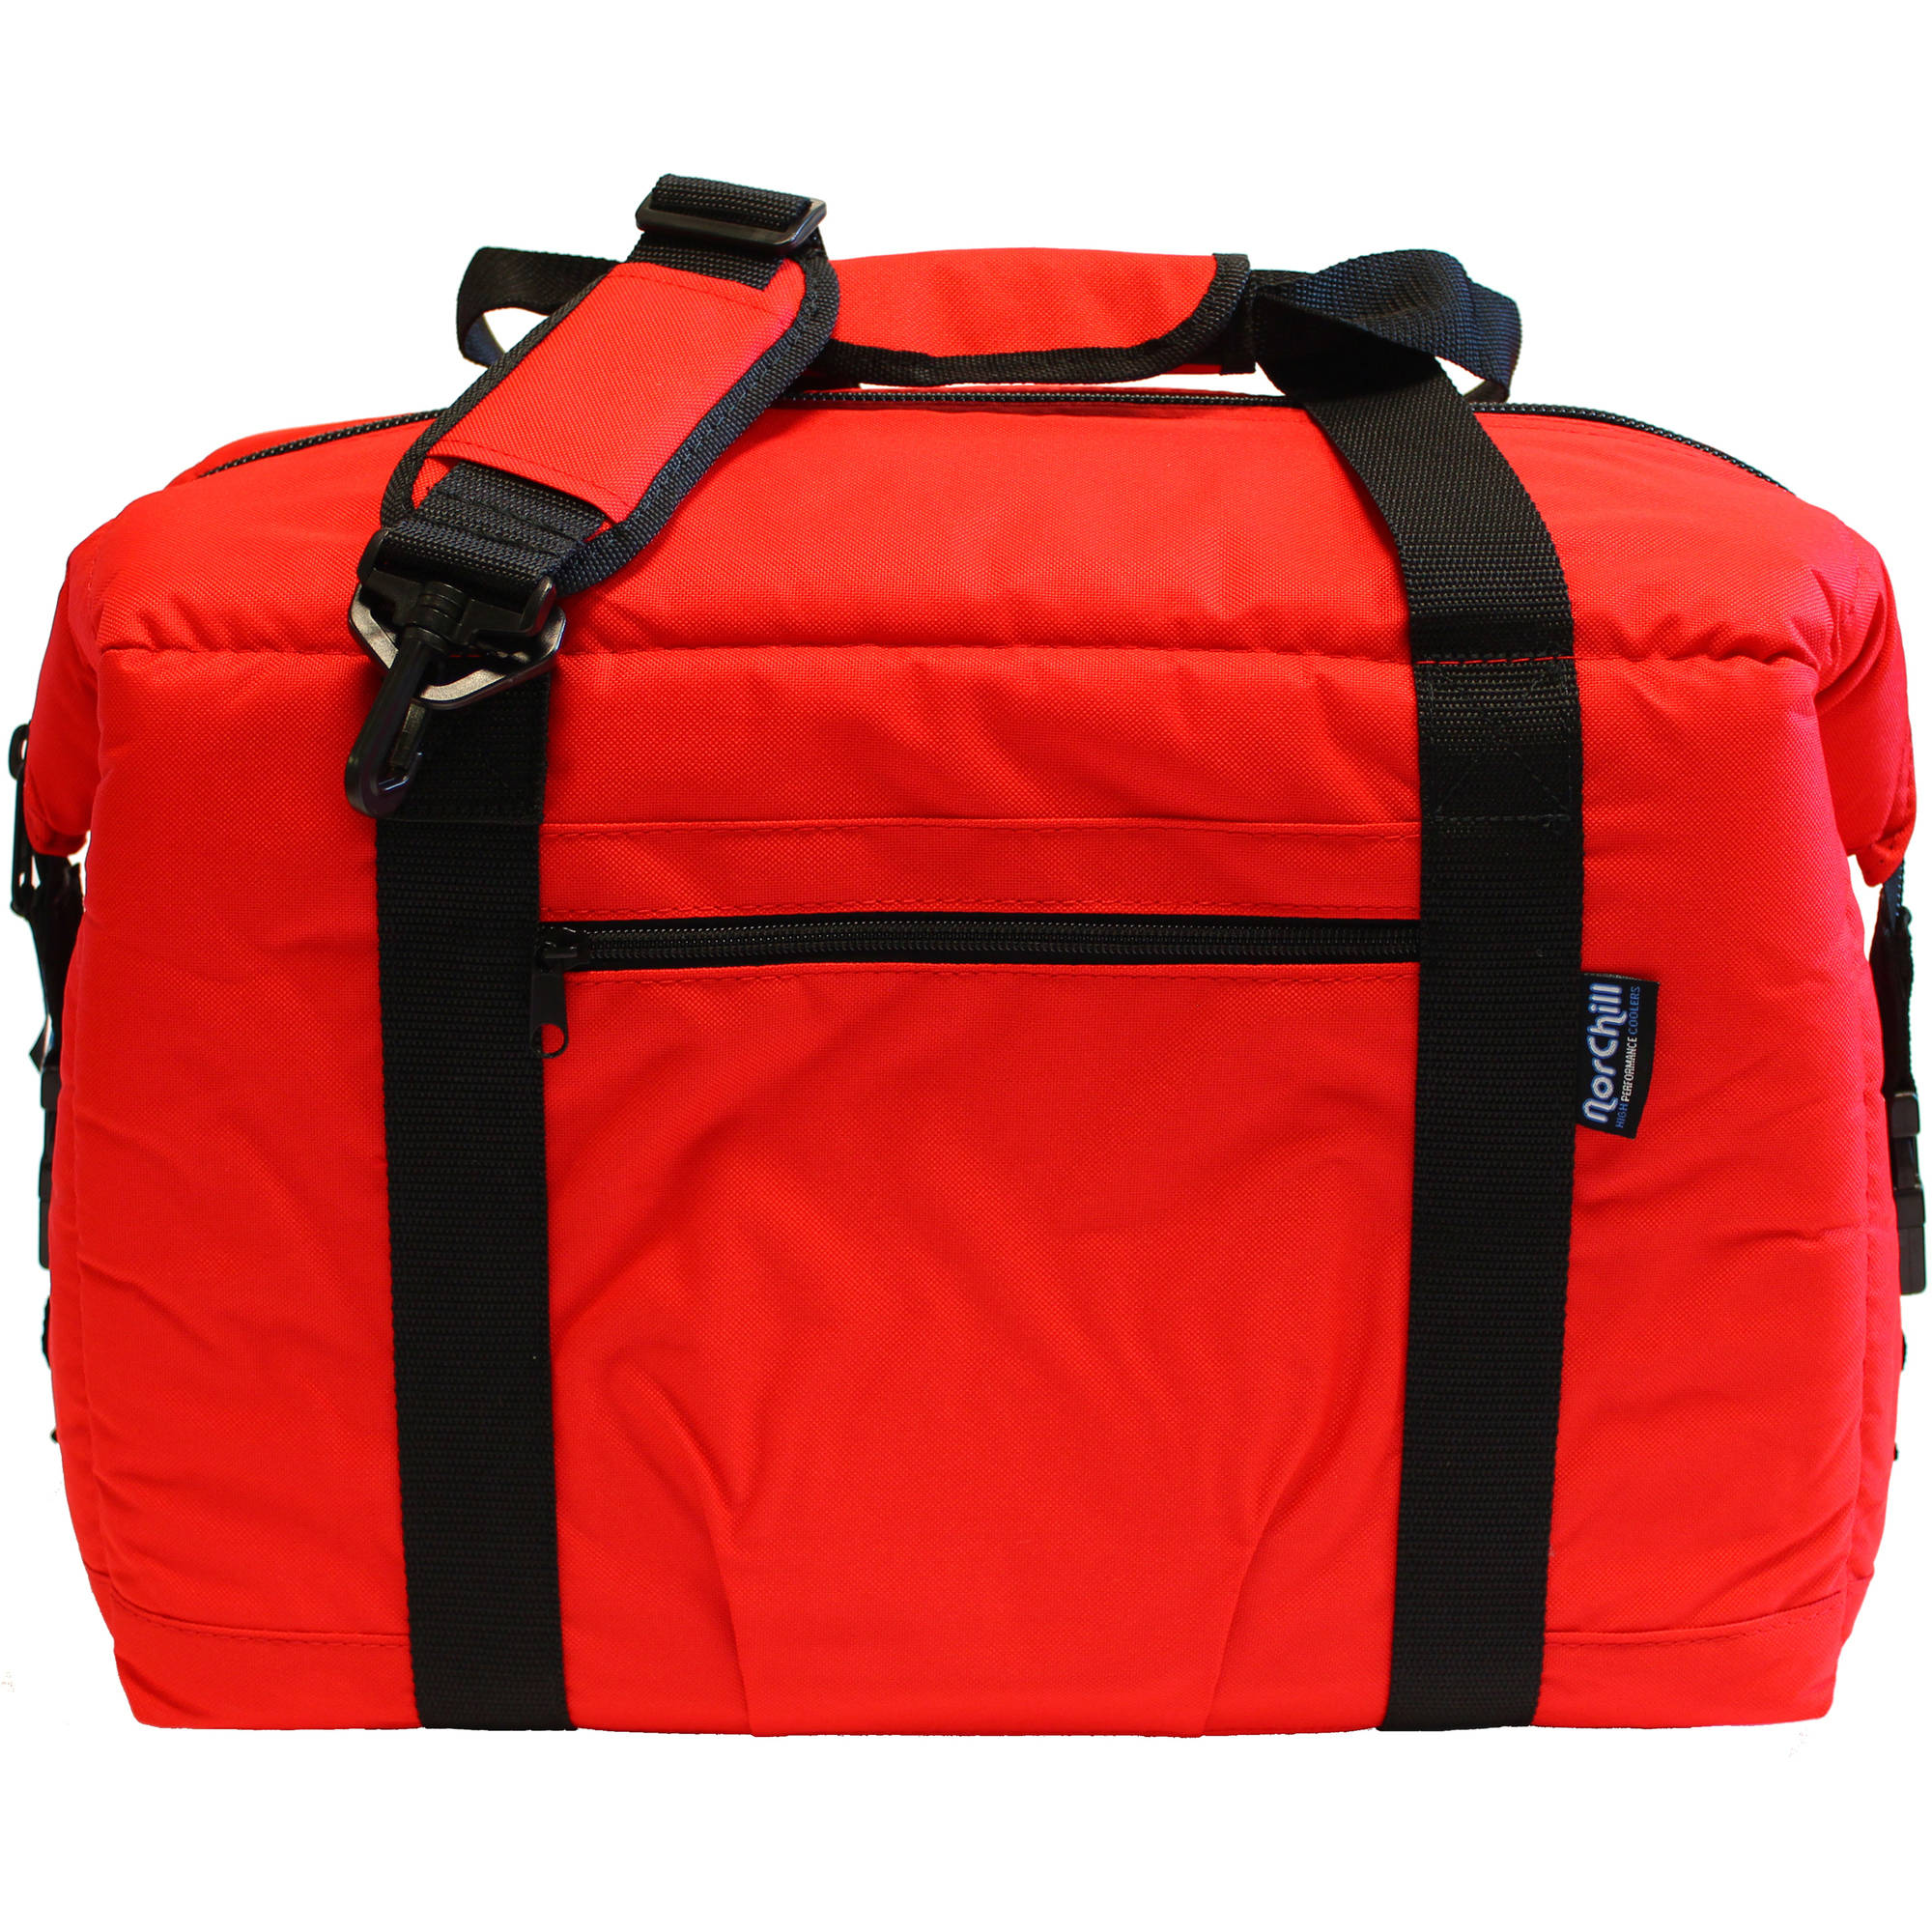 NorChill Voyager Series 12-Can Cooler Bag- Red